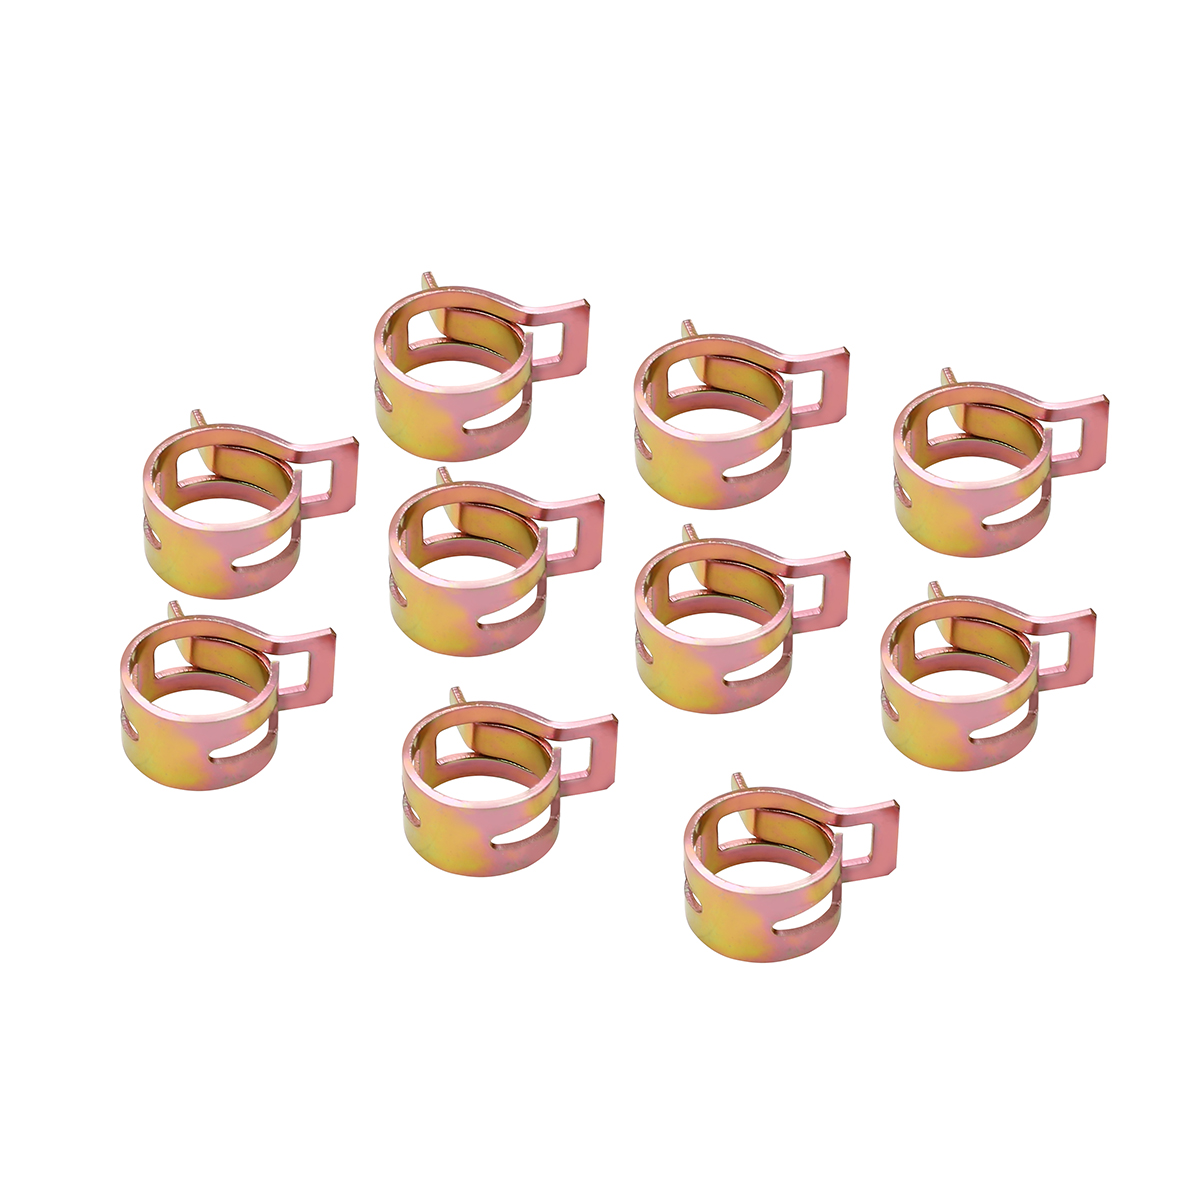 New Hot 60Pcs 6 15mm Auto Fastener & Clip Spring Clip Fuel Line Hose Water Pipe Tube Clamps Fastener Mayitr-in Auto Fastener & Clip from Automobiles & Motorcycles